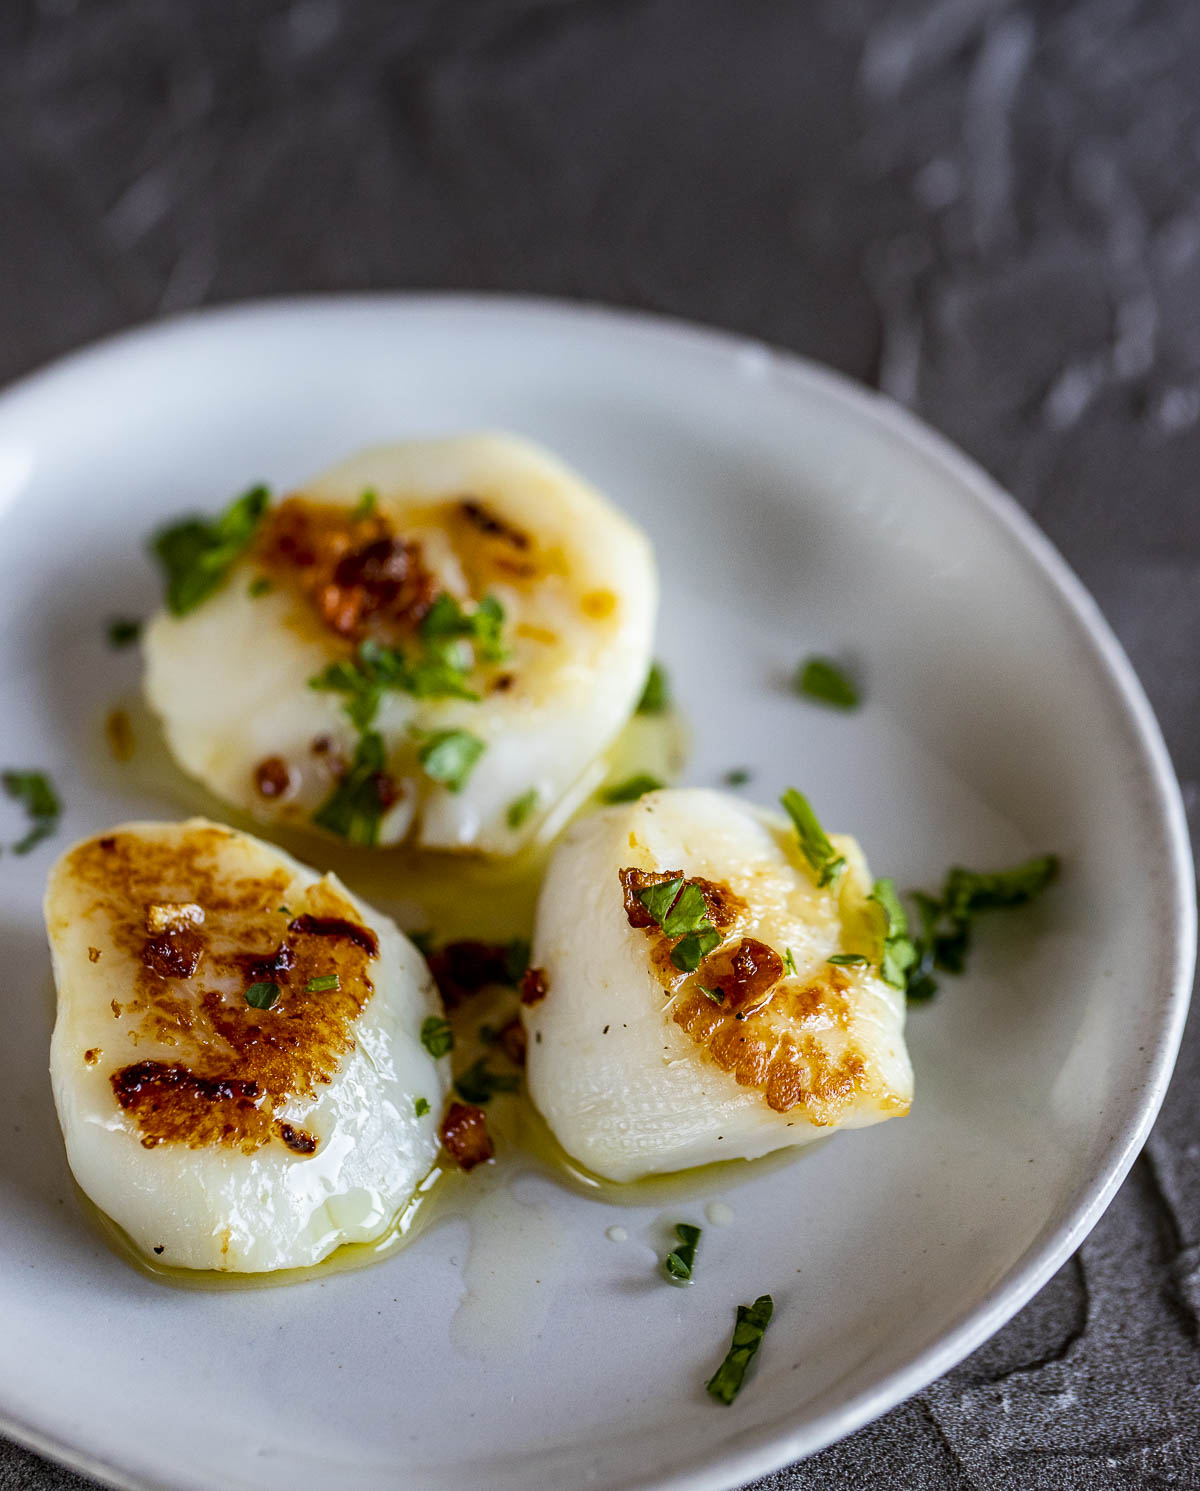 seared sous vide scallops on a plate drizzled in butter and parsley